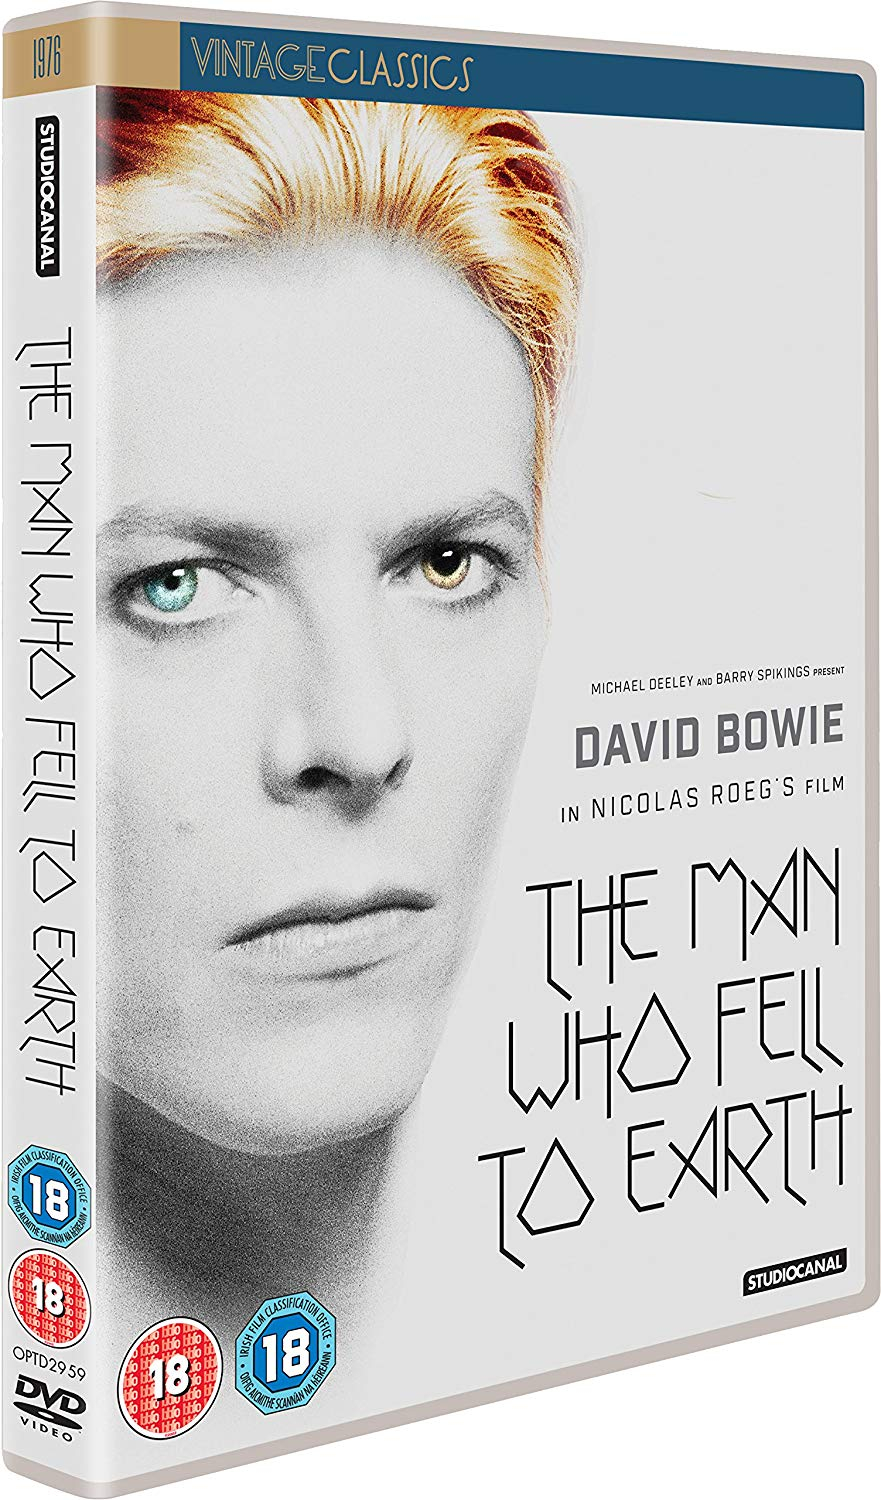 Buy The Man Who Fell to Earth